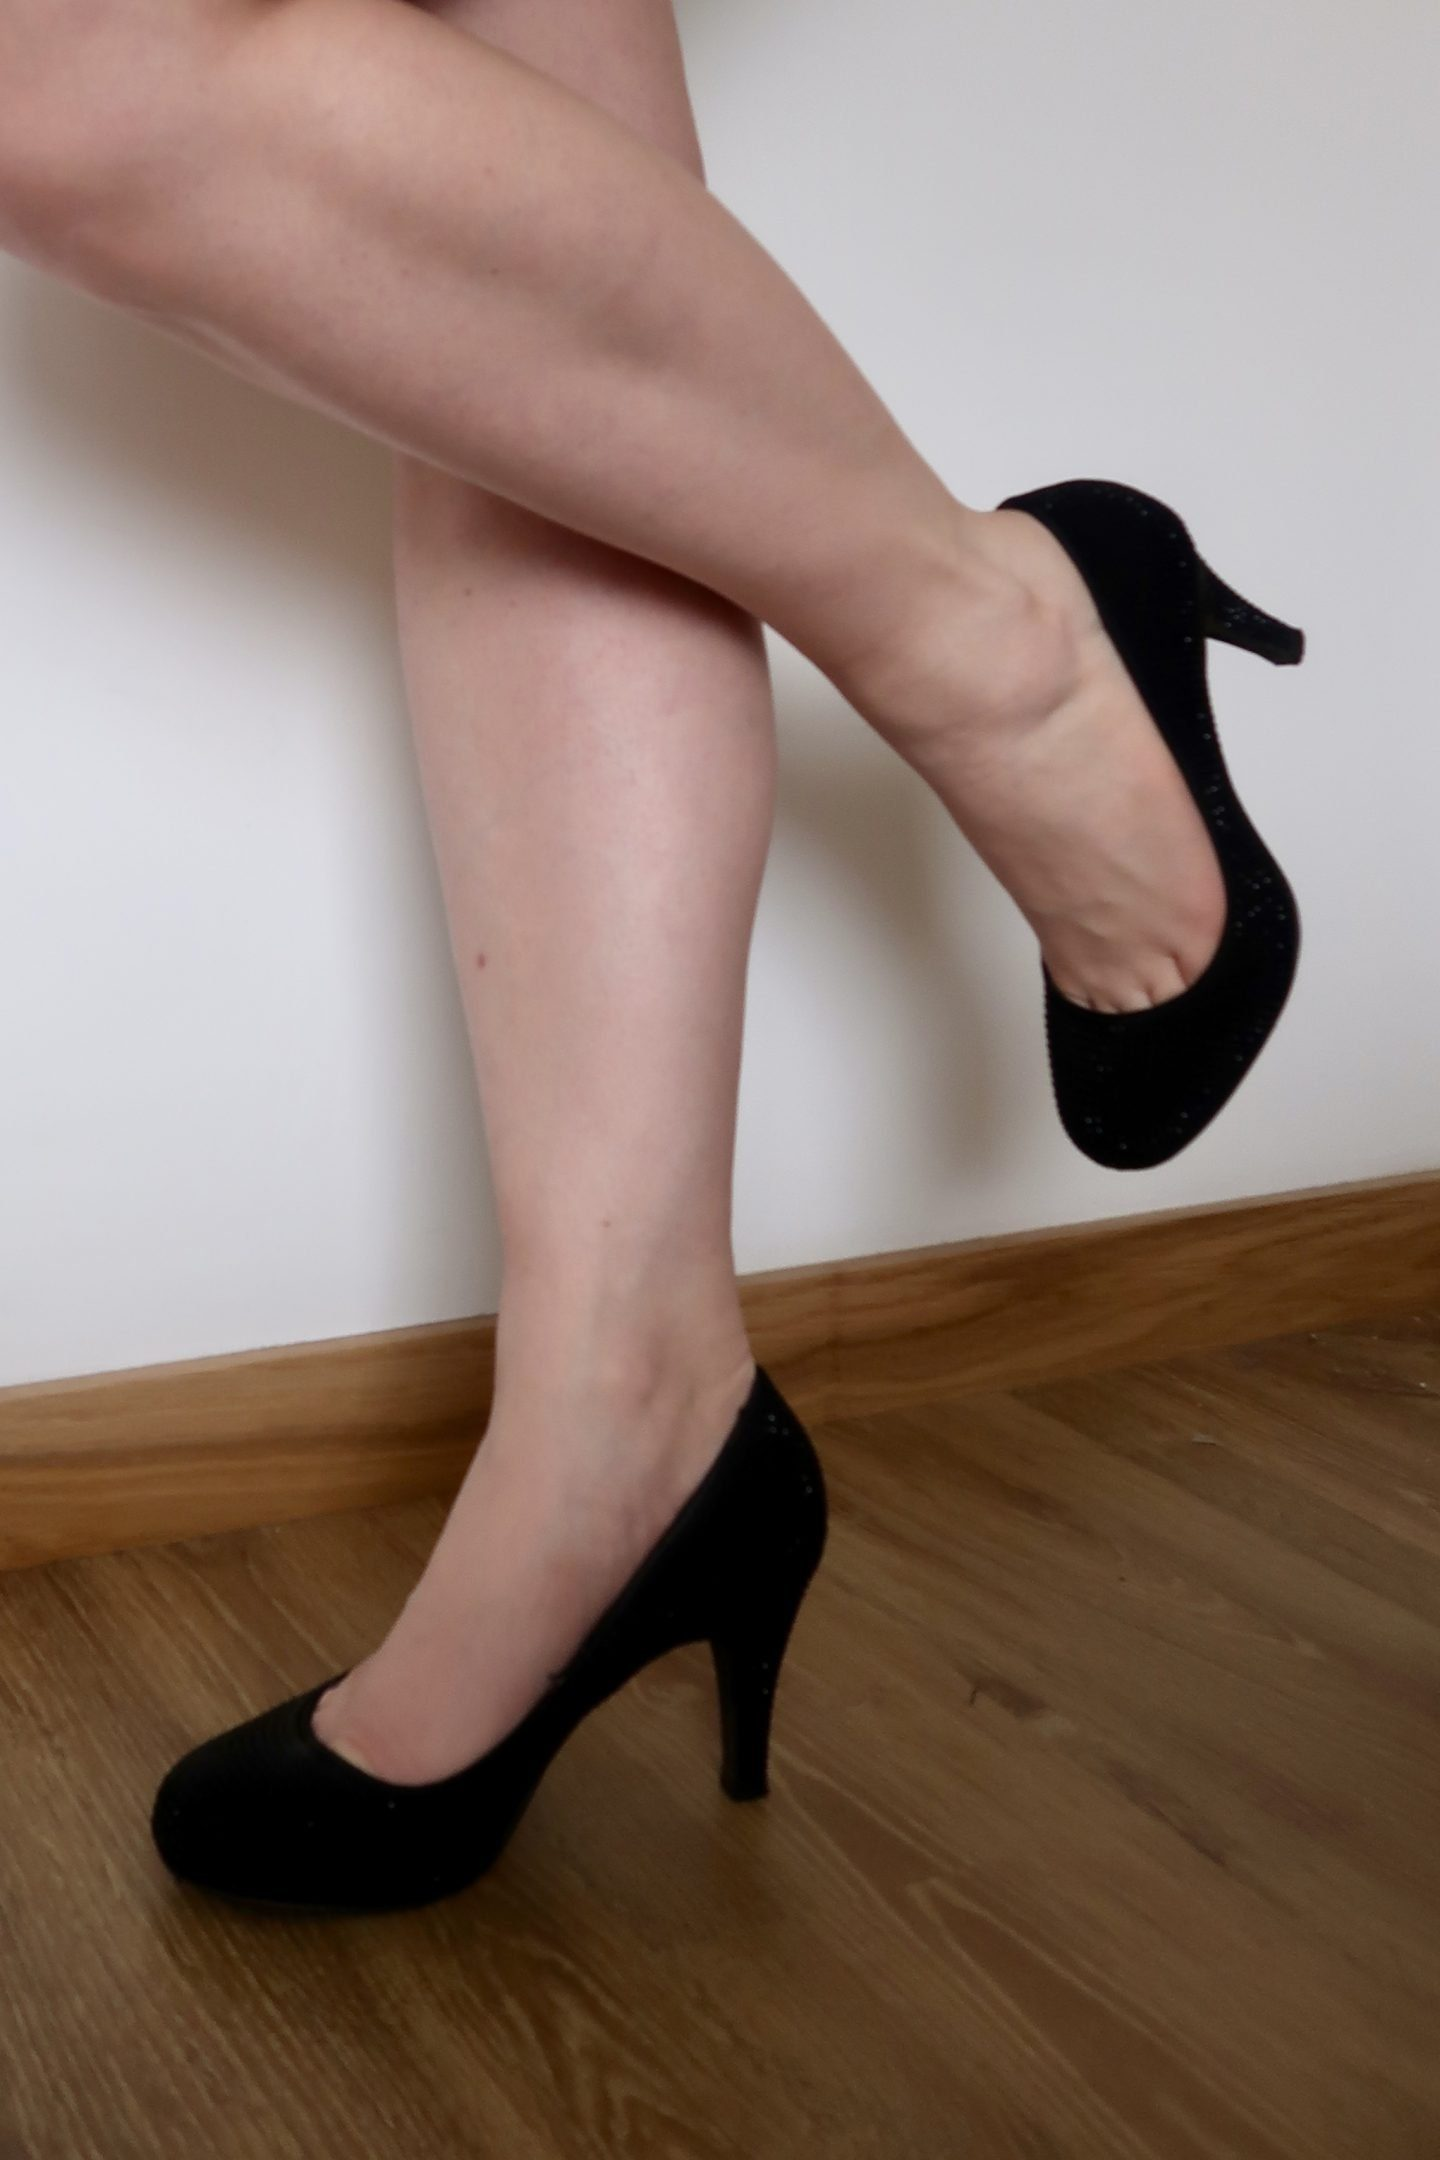 The bare legs of a woman wearing black heeled shoes